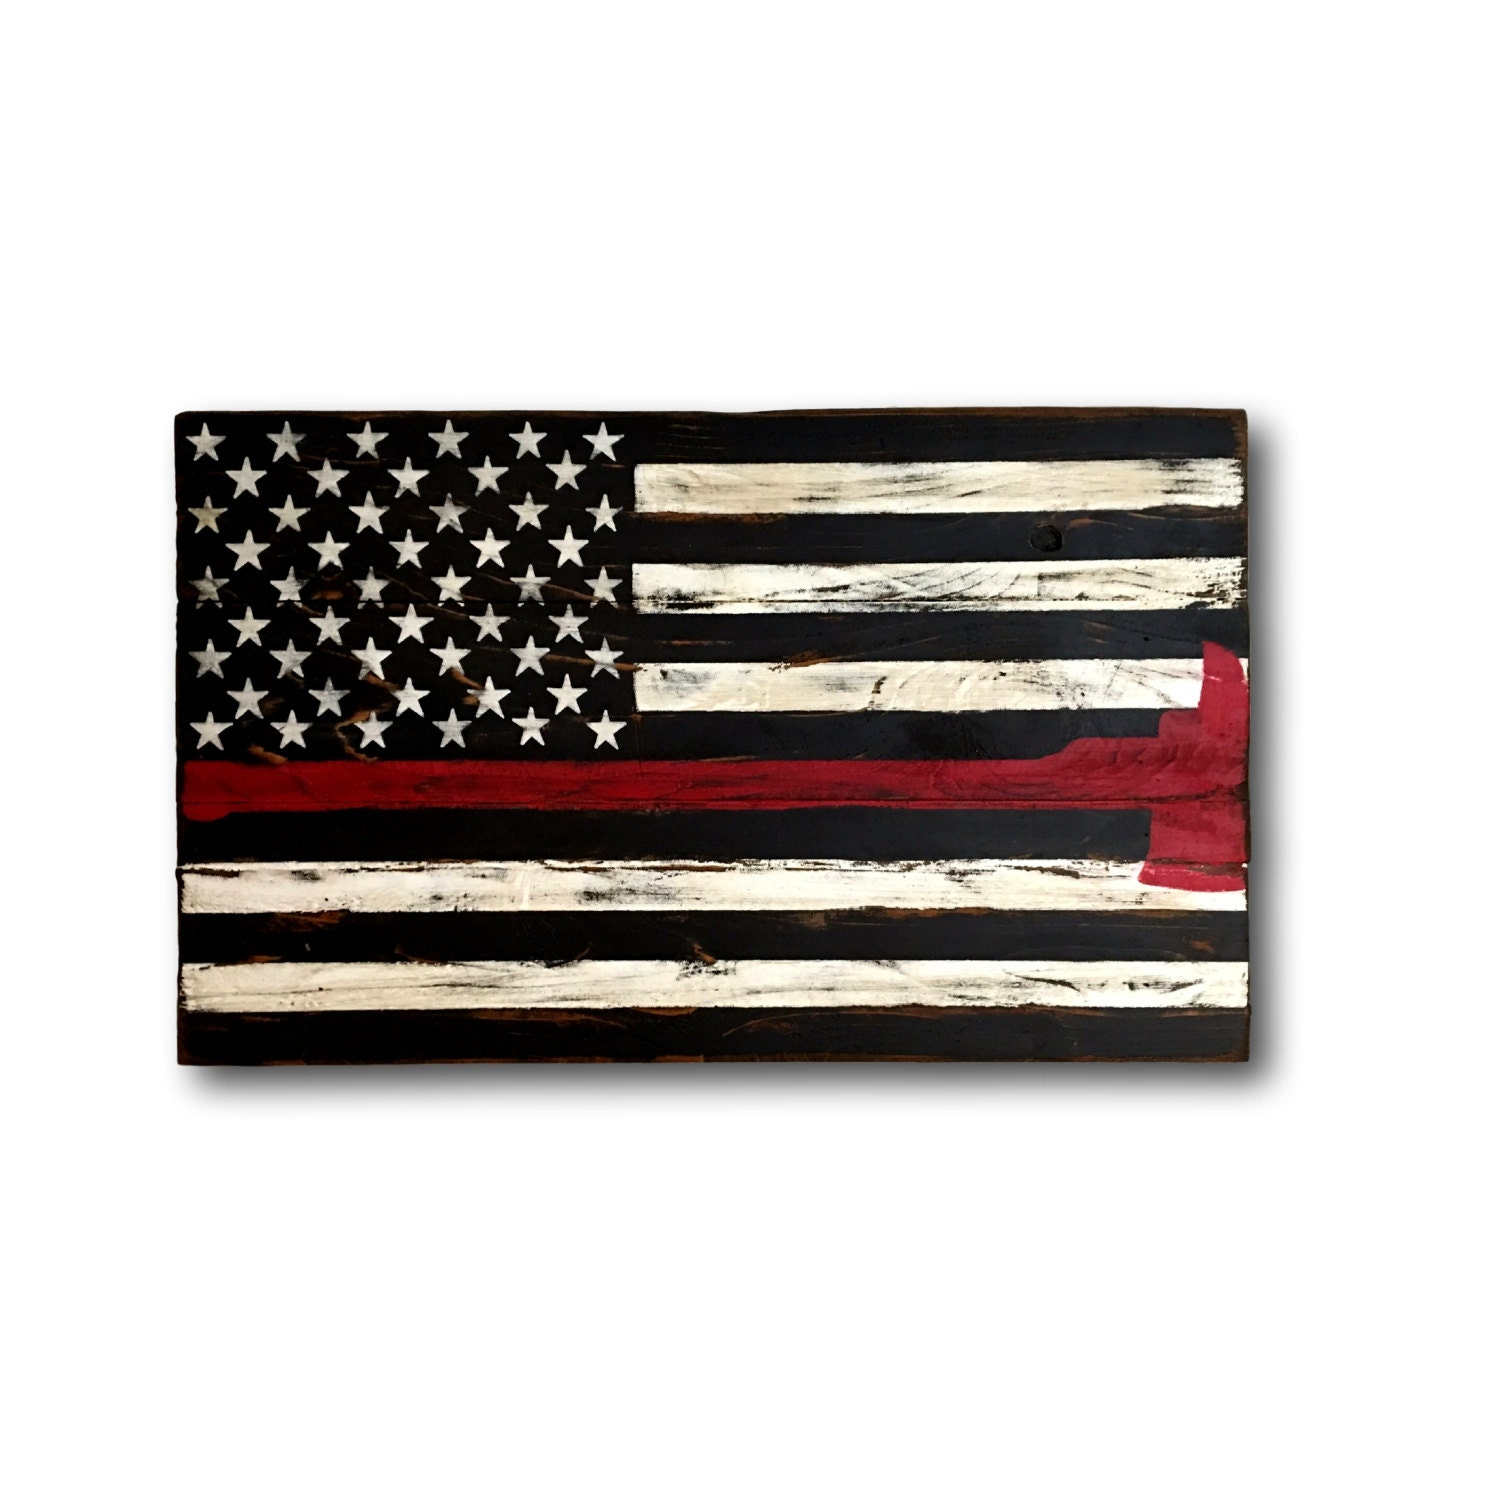 Ohio state sign block o sign graduation gift dorm decor thin red line flag firefighter axe sign firefighter gift firefighter wood flag amipublicfo Image collections